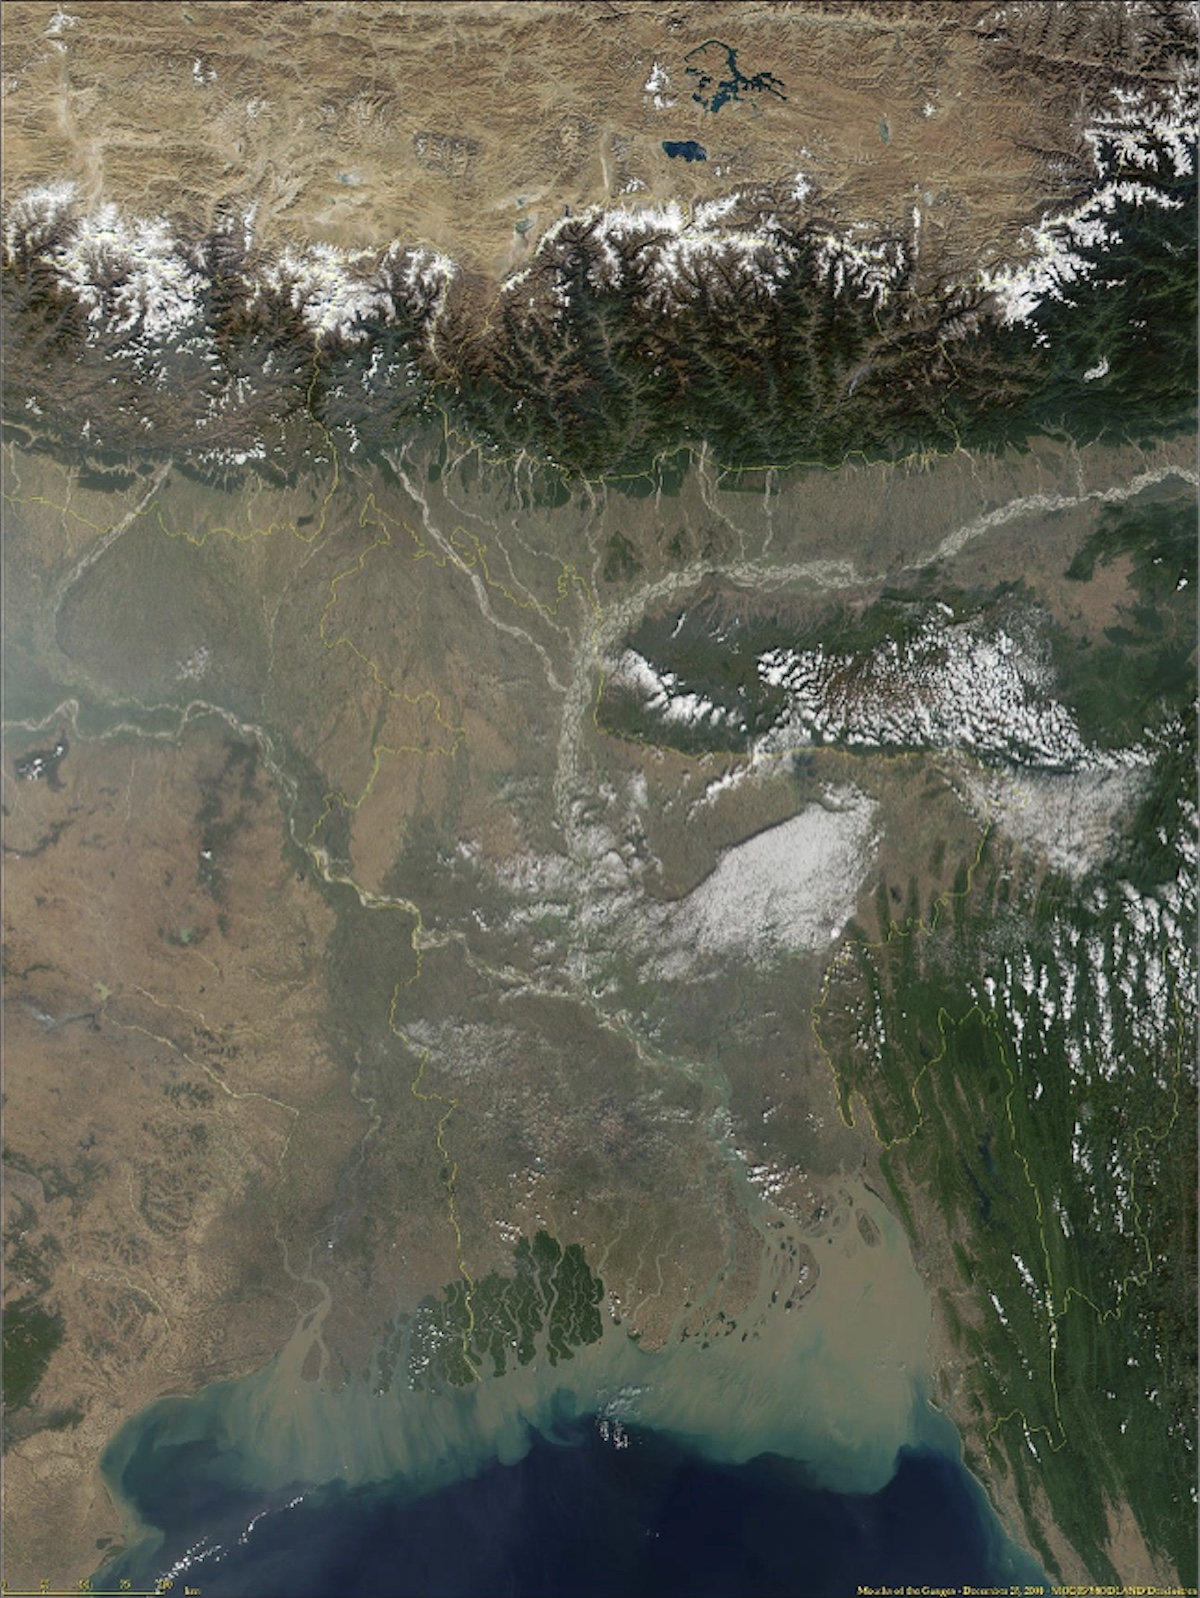 Satellite image of the Ganges and Brahmaputra rivers, draining south from the Himalayas into the Bay of Bengal.